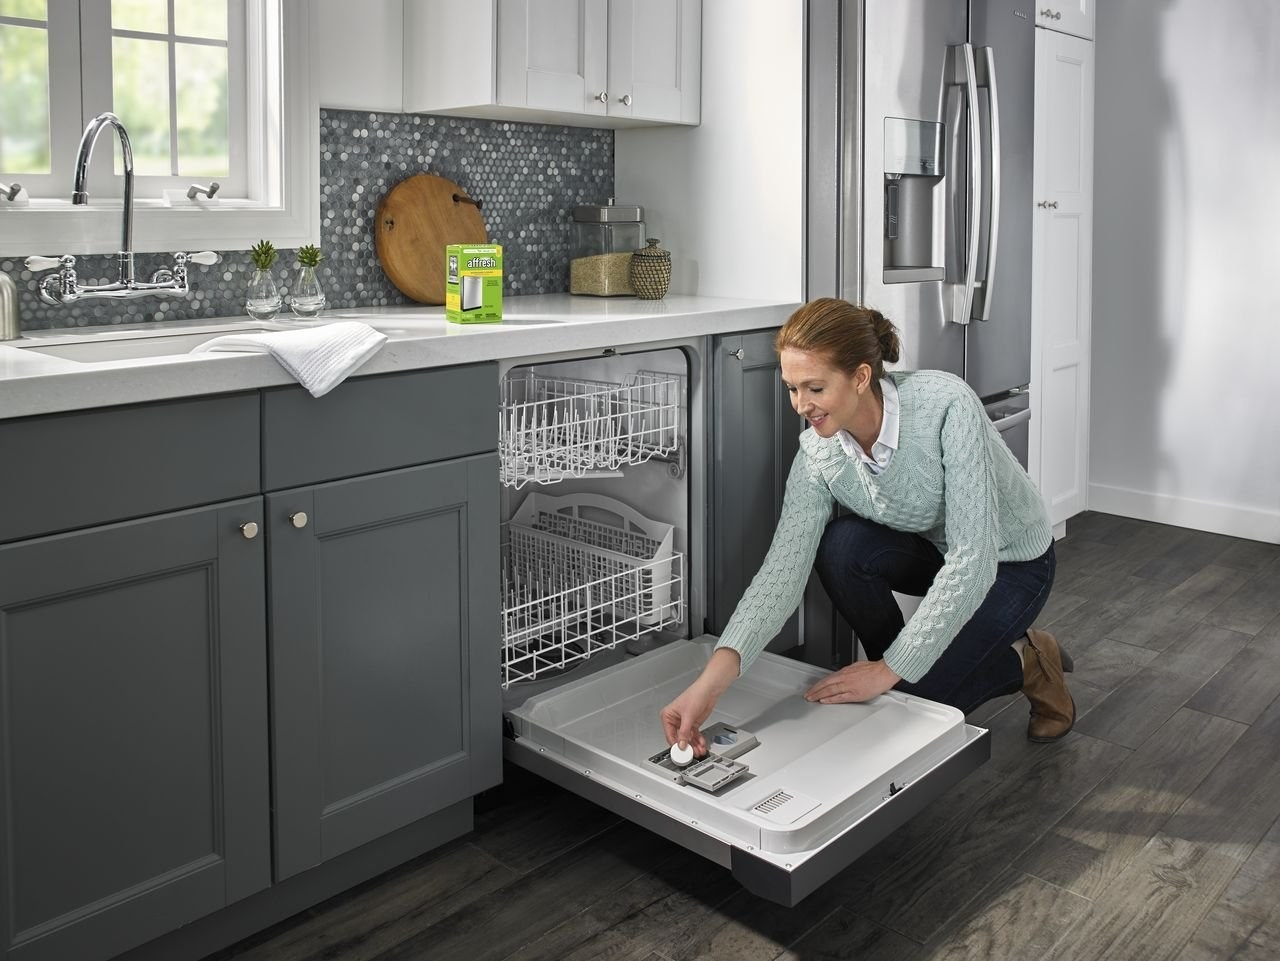 model puts tablet in dishwasher